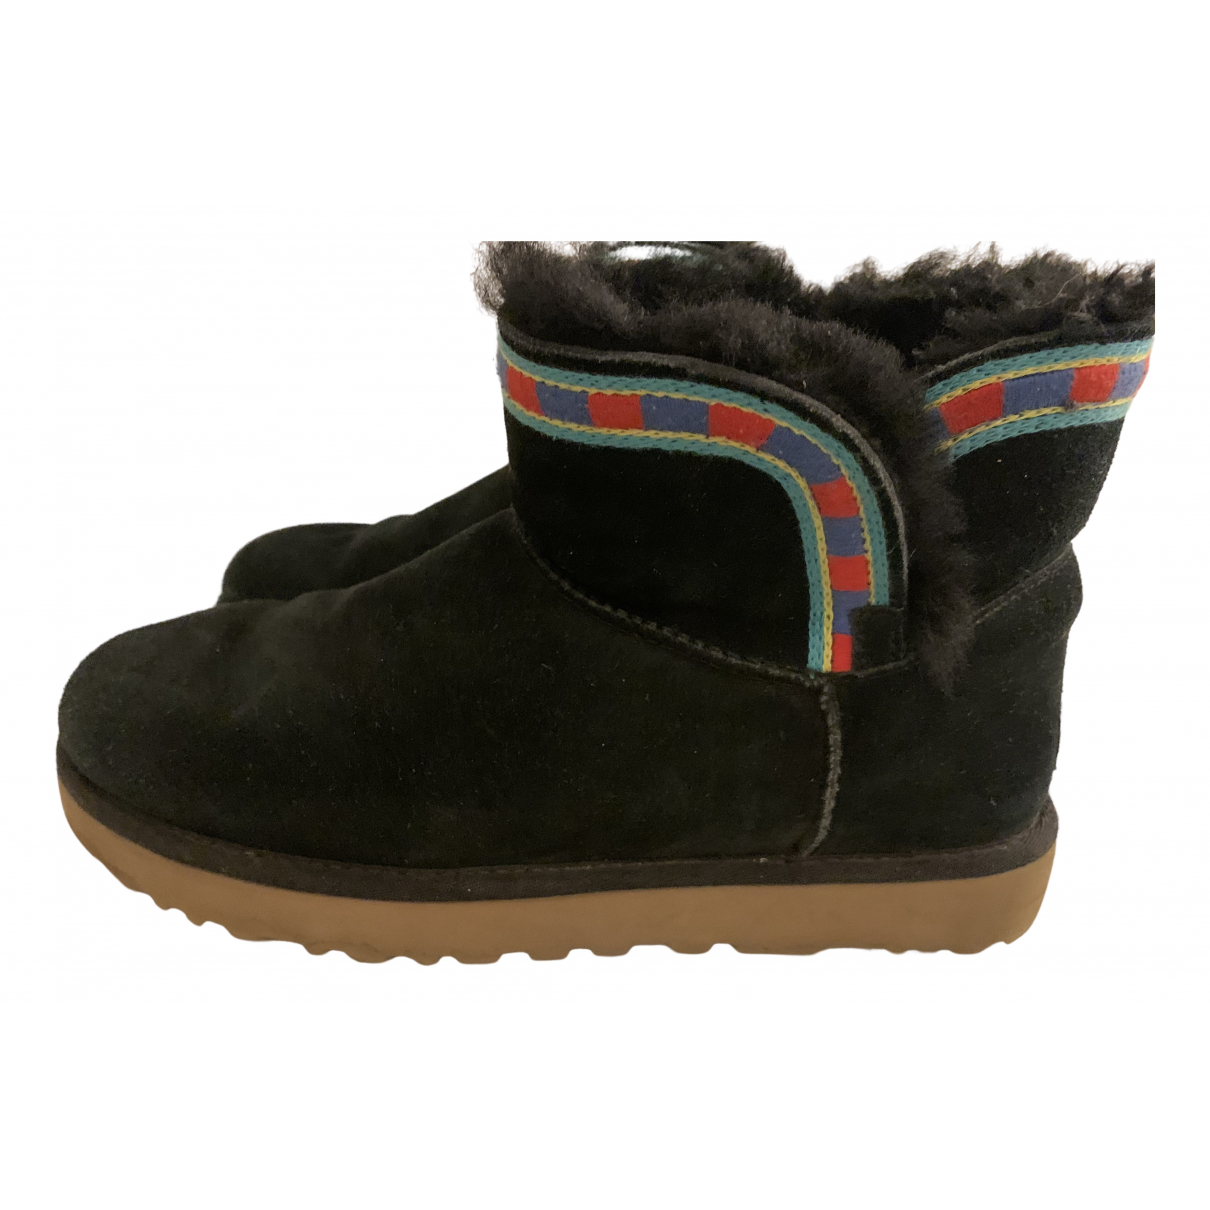 Ugg N Black Suede Ankle boots for Women 40 EU